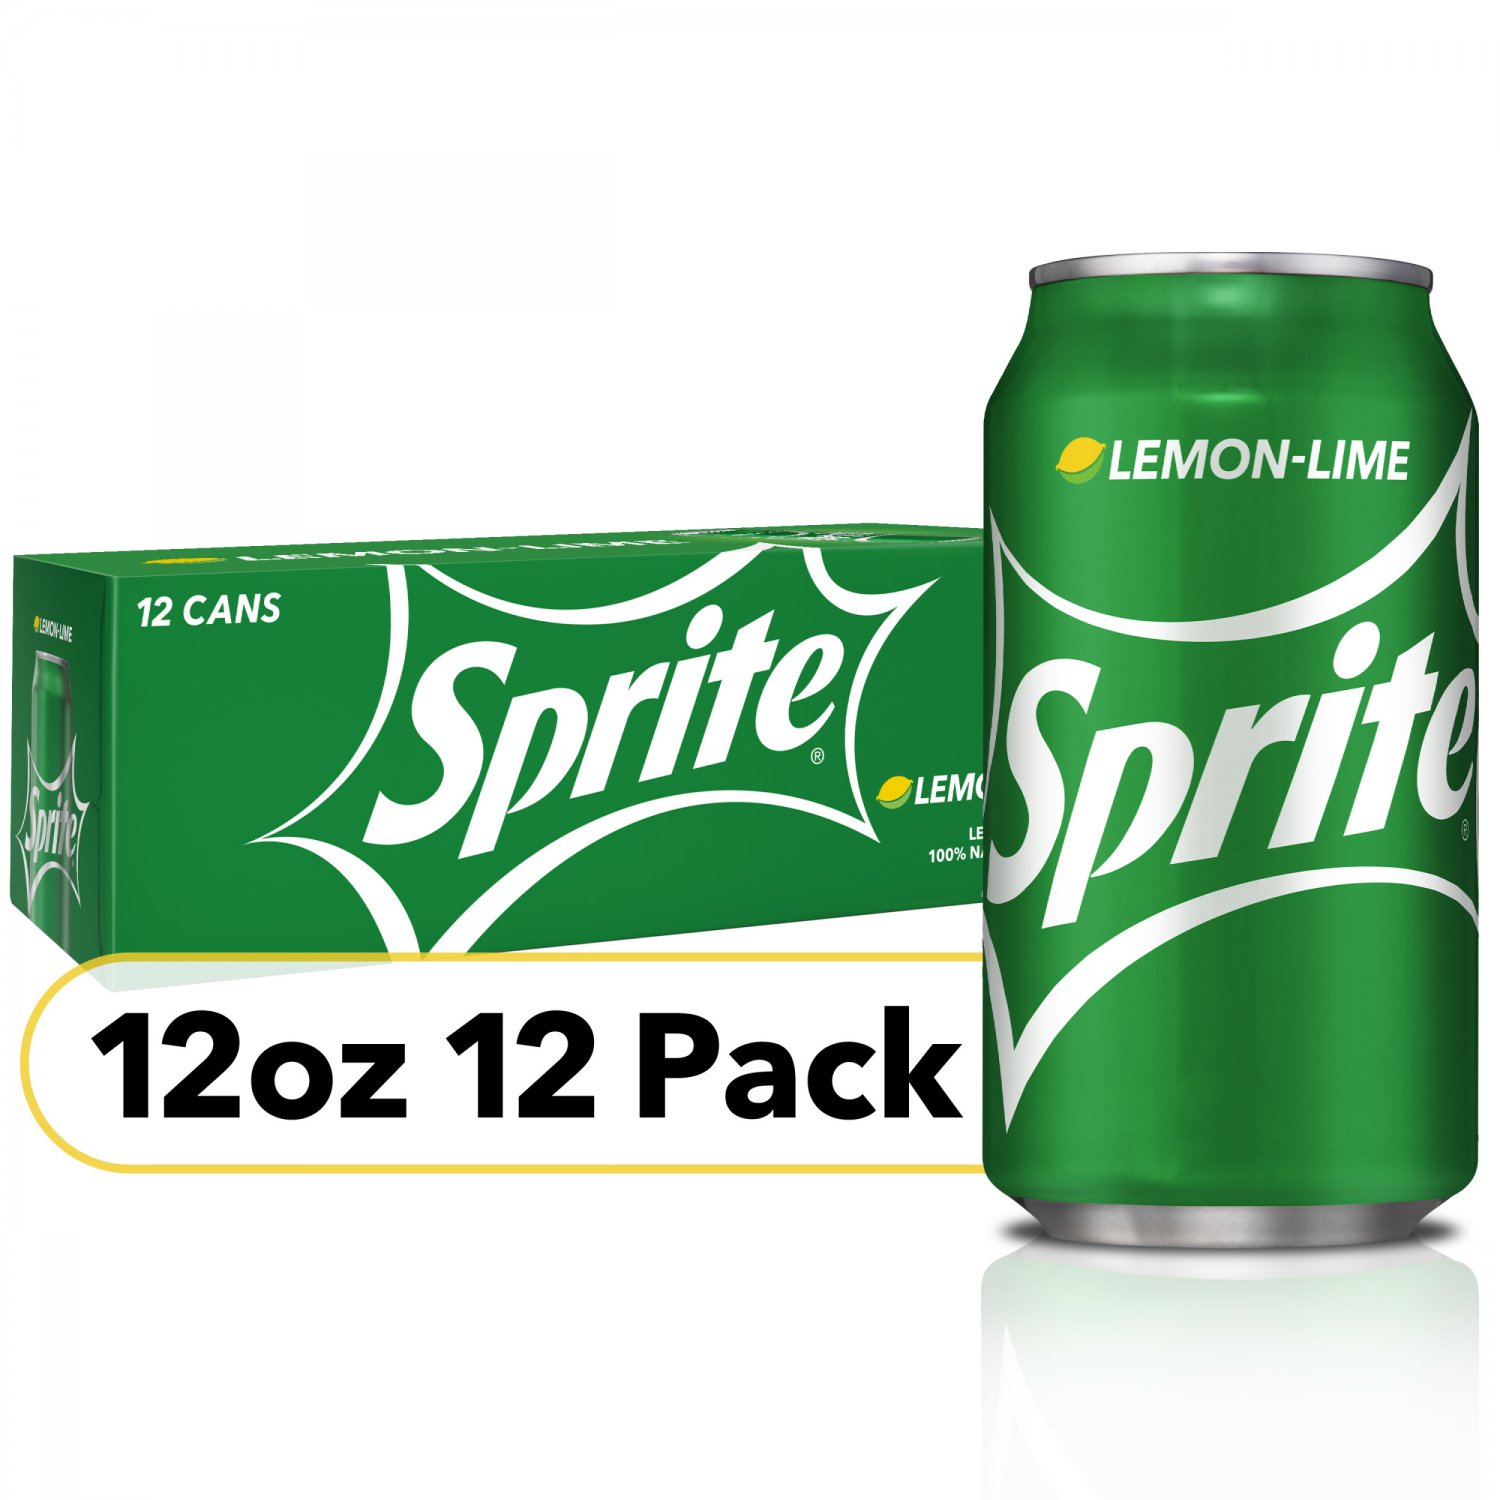 Sprite Lemon Lime Soda Soft Drinks (12oz Can) 12 Cans